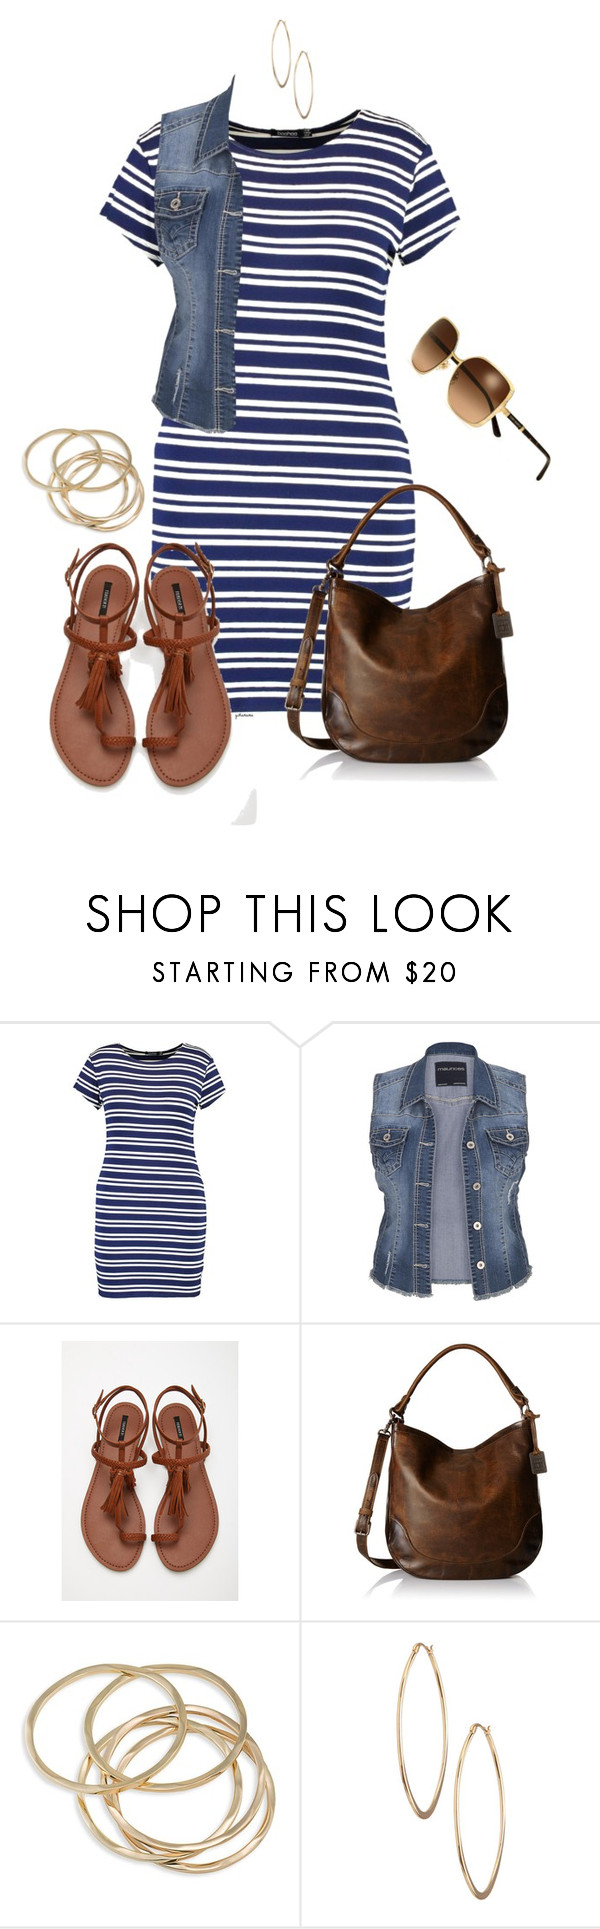 """""""Ootd: Stripey- plus size"""" by gchamama ❤ liked on Polyvore featuring Boohoo, maurices, Forever 21, Frye, ABS by Allen Schwartz, Lydell NYC and Tory Burch"""